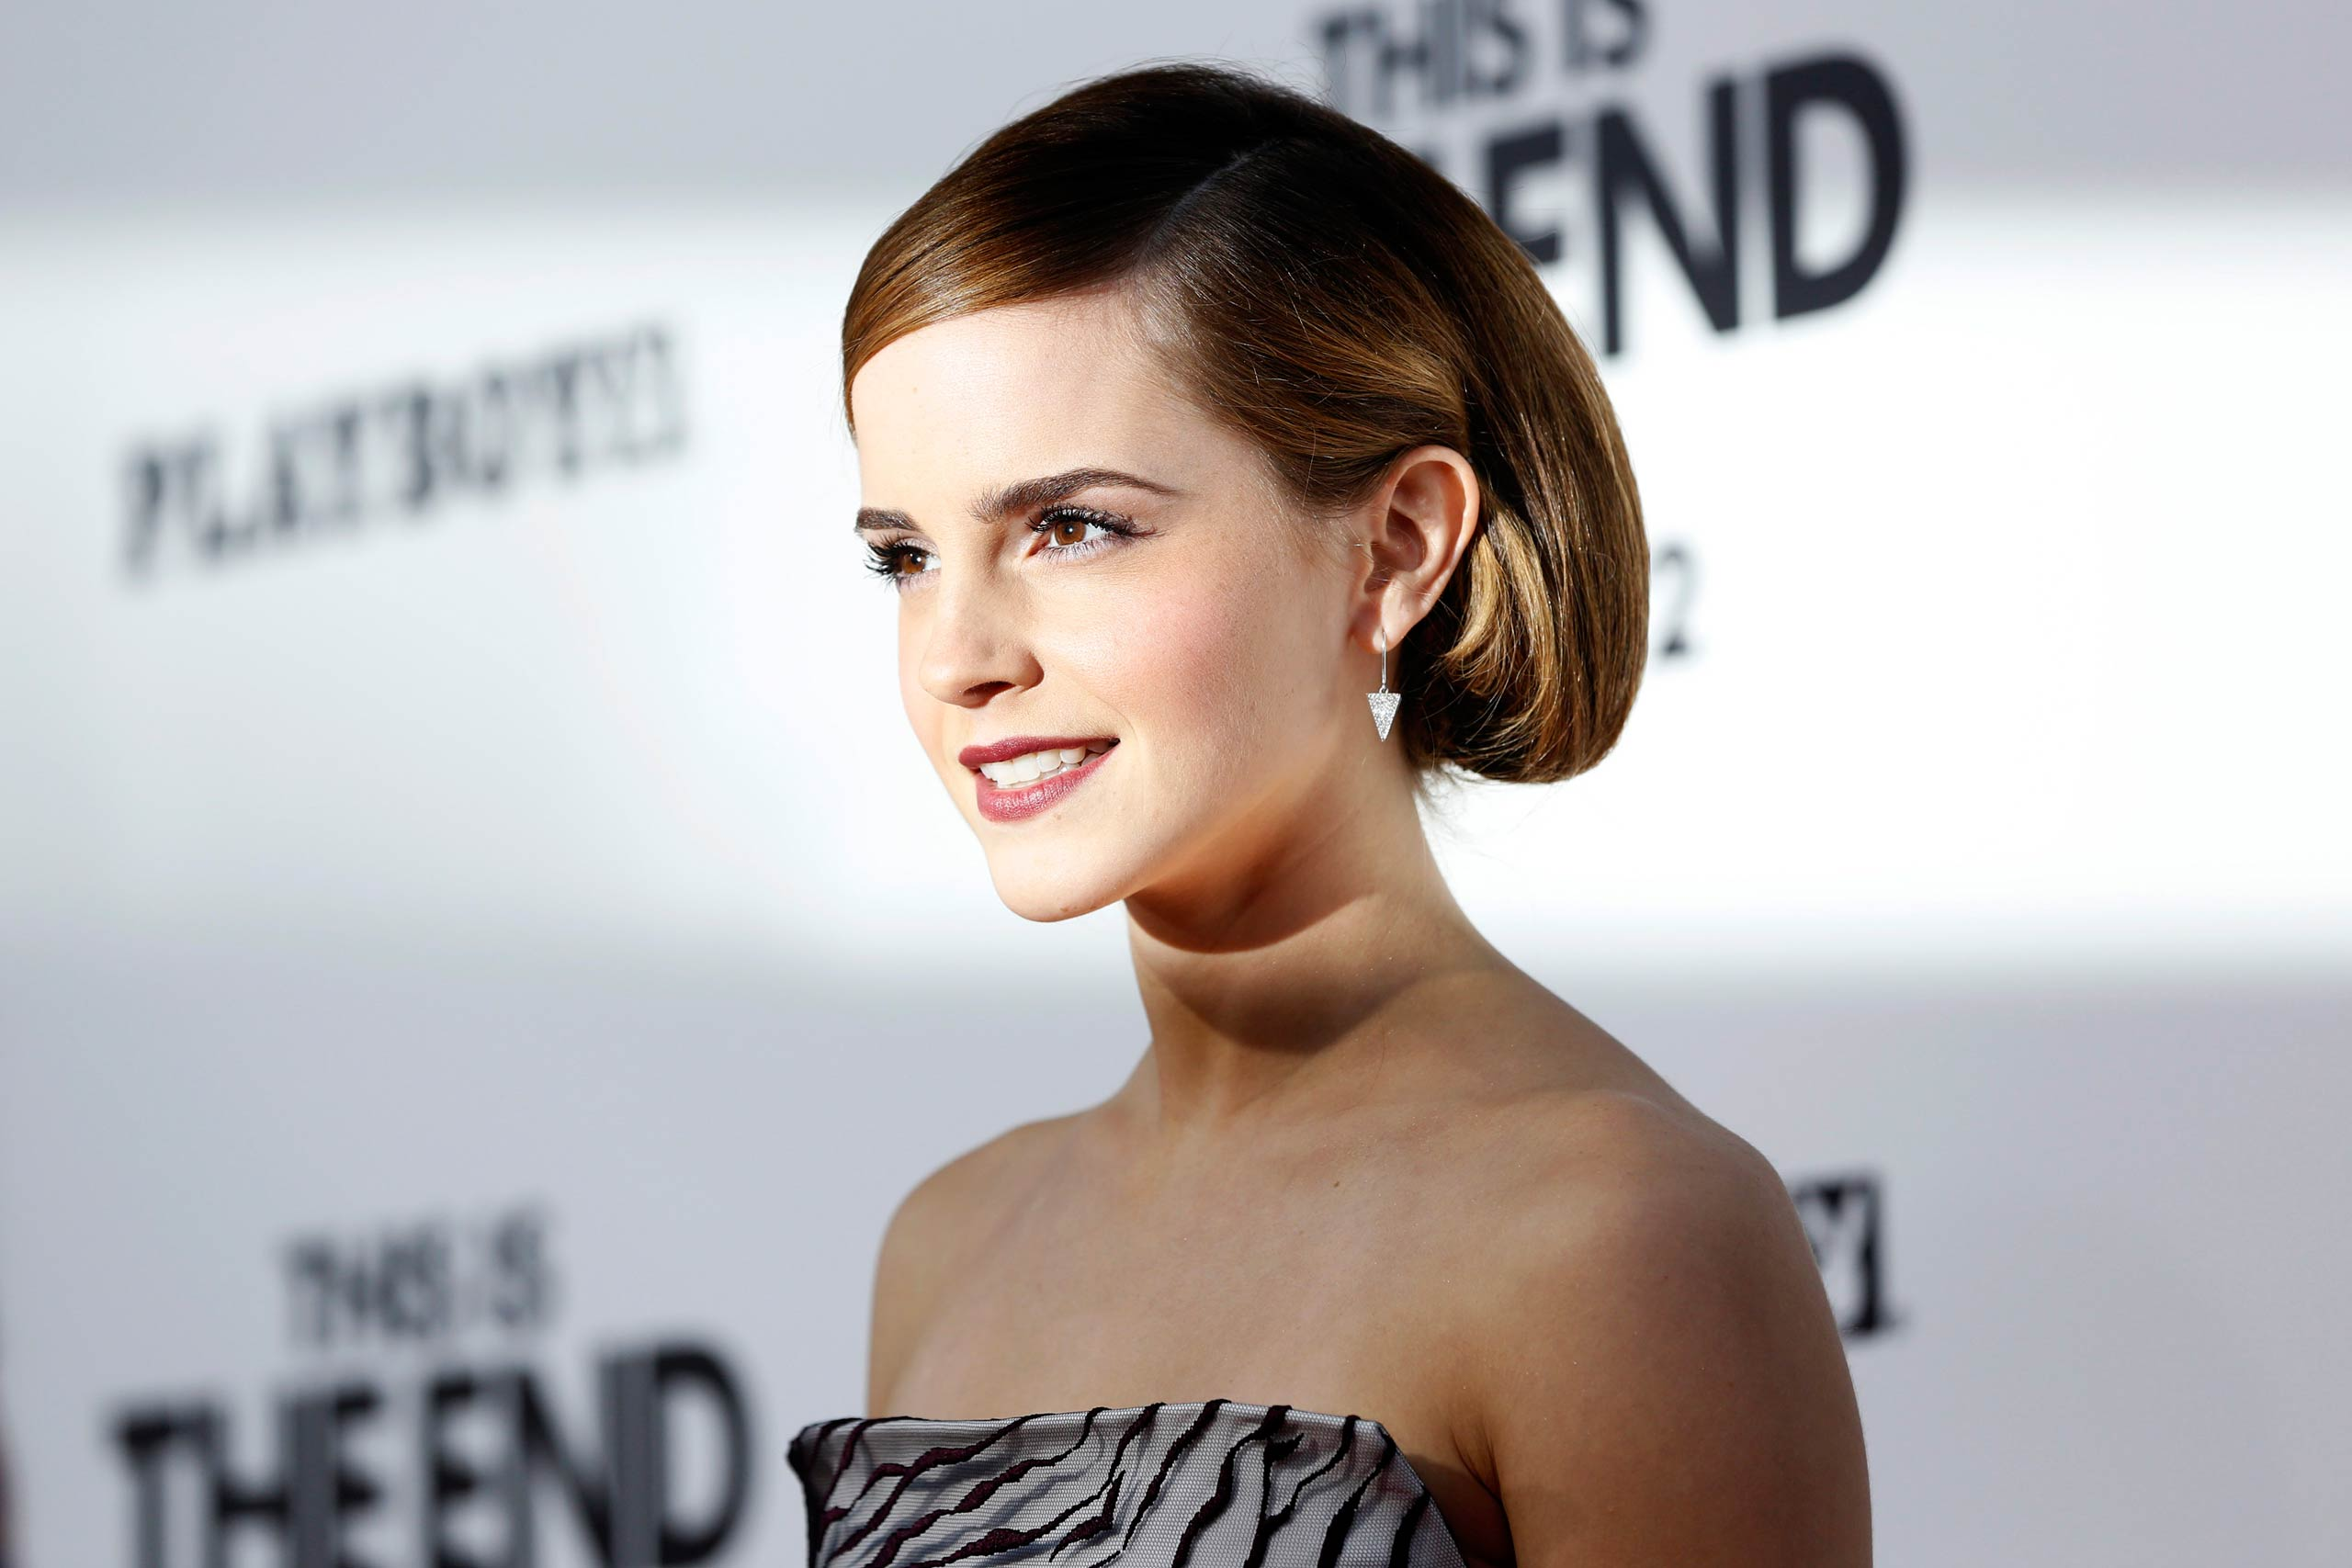 Emma Watson attends the premiere of <i>This Is the End</i> at the Regency Village Theatre in Los Angeles in 2013.